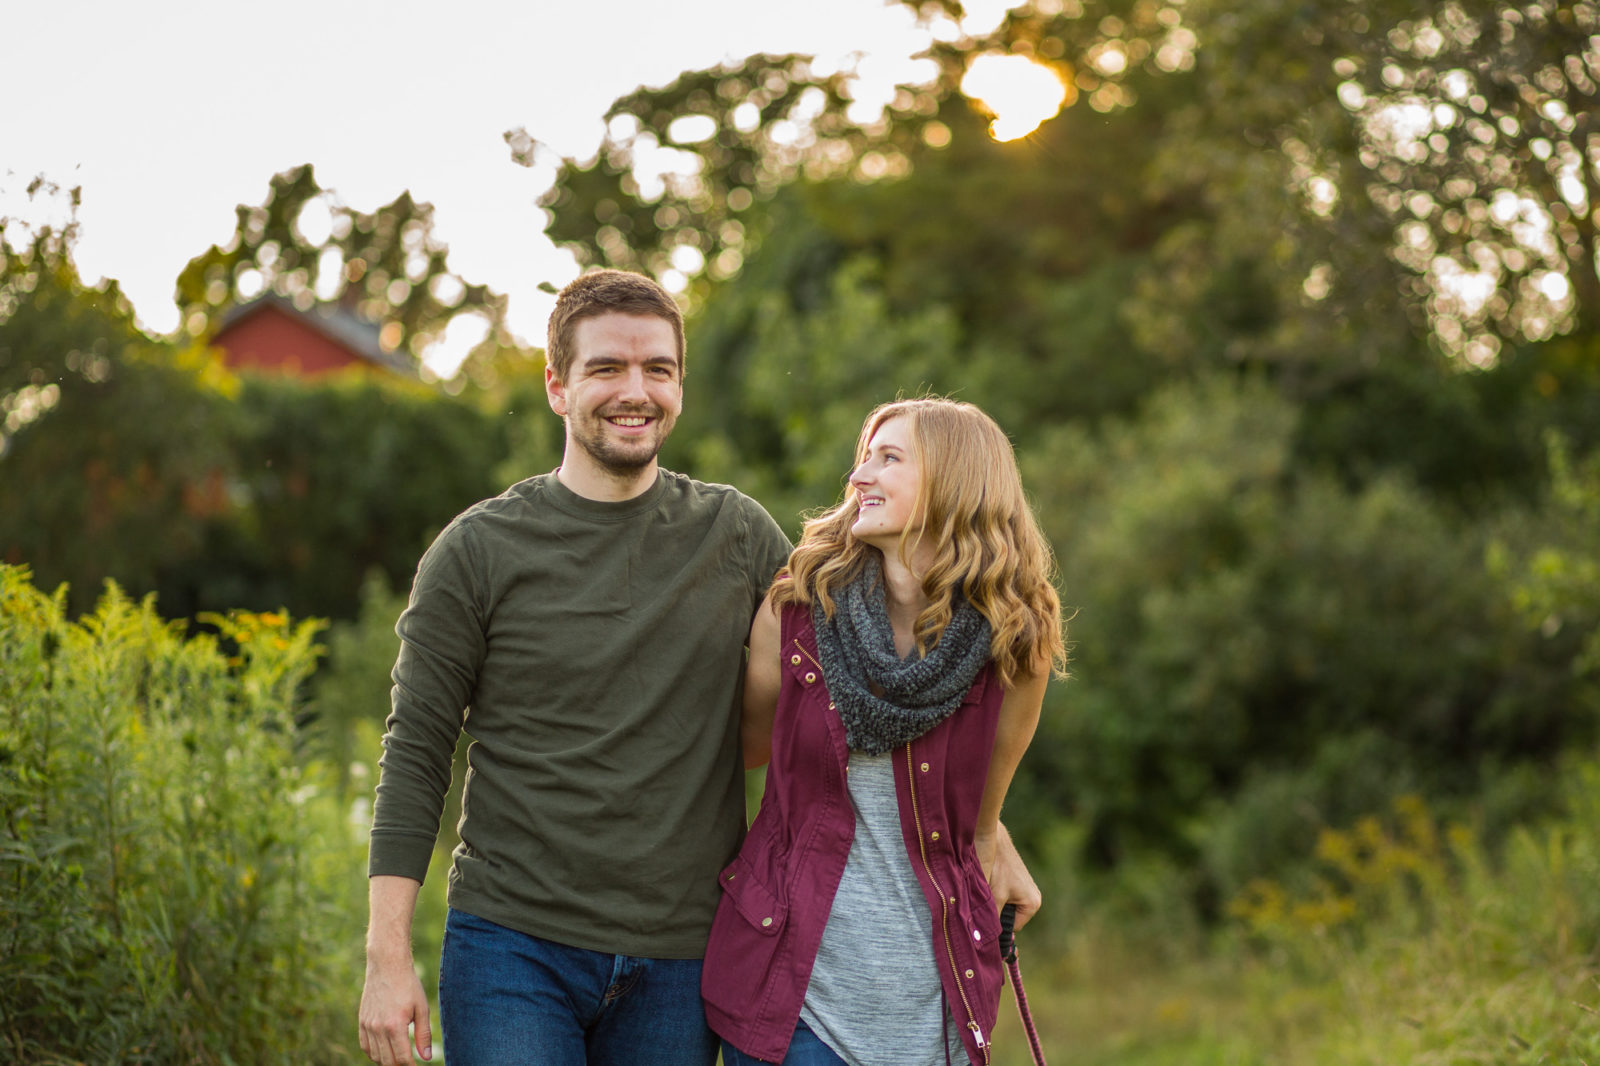 golden hour farm engagement session in Pomfret, CT